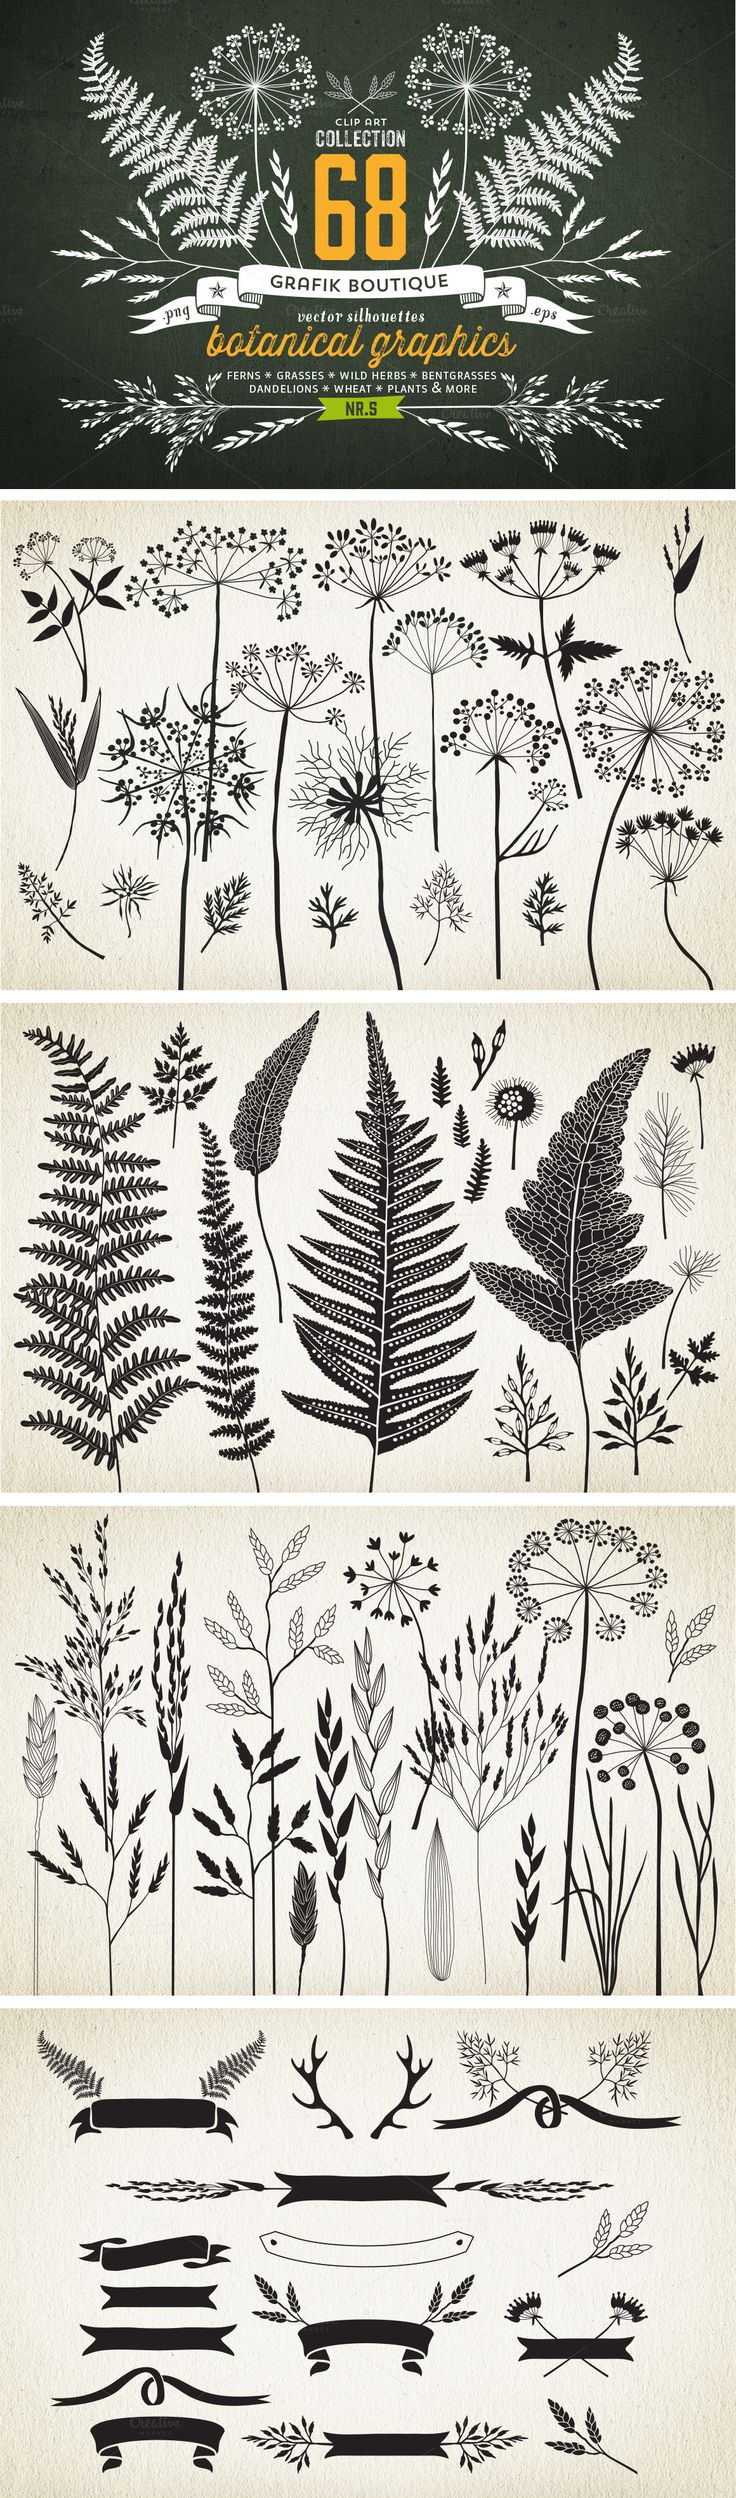 Botanical element illustrations... *IDEA* try printing to give a sense of…